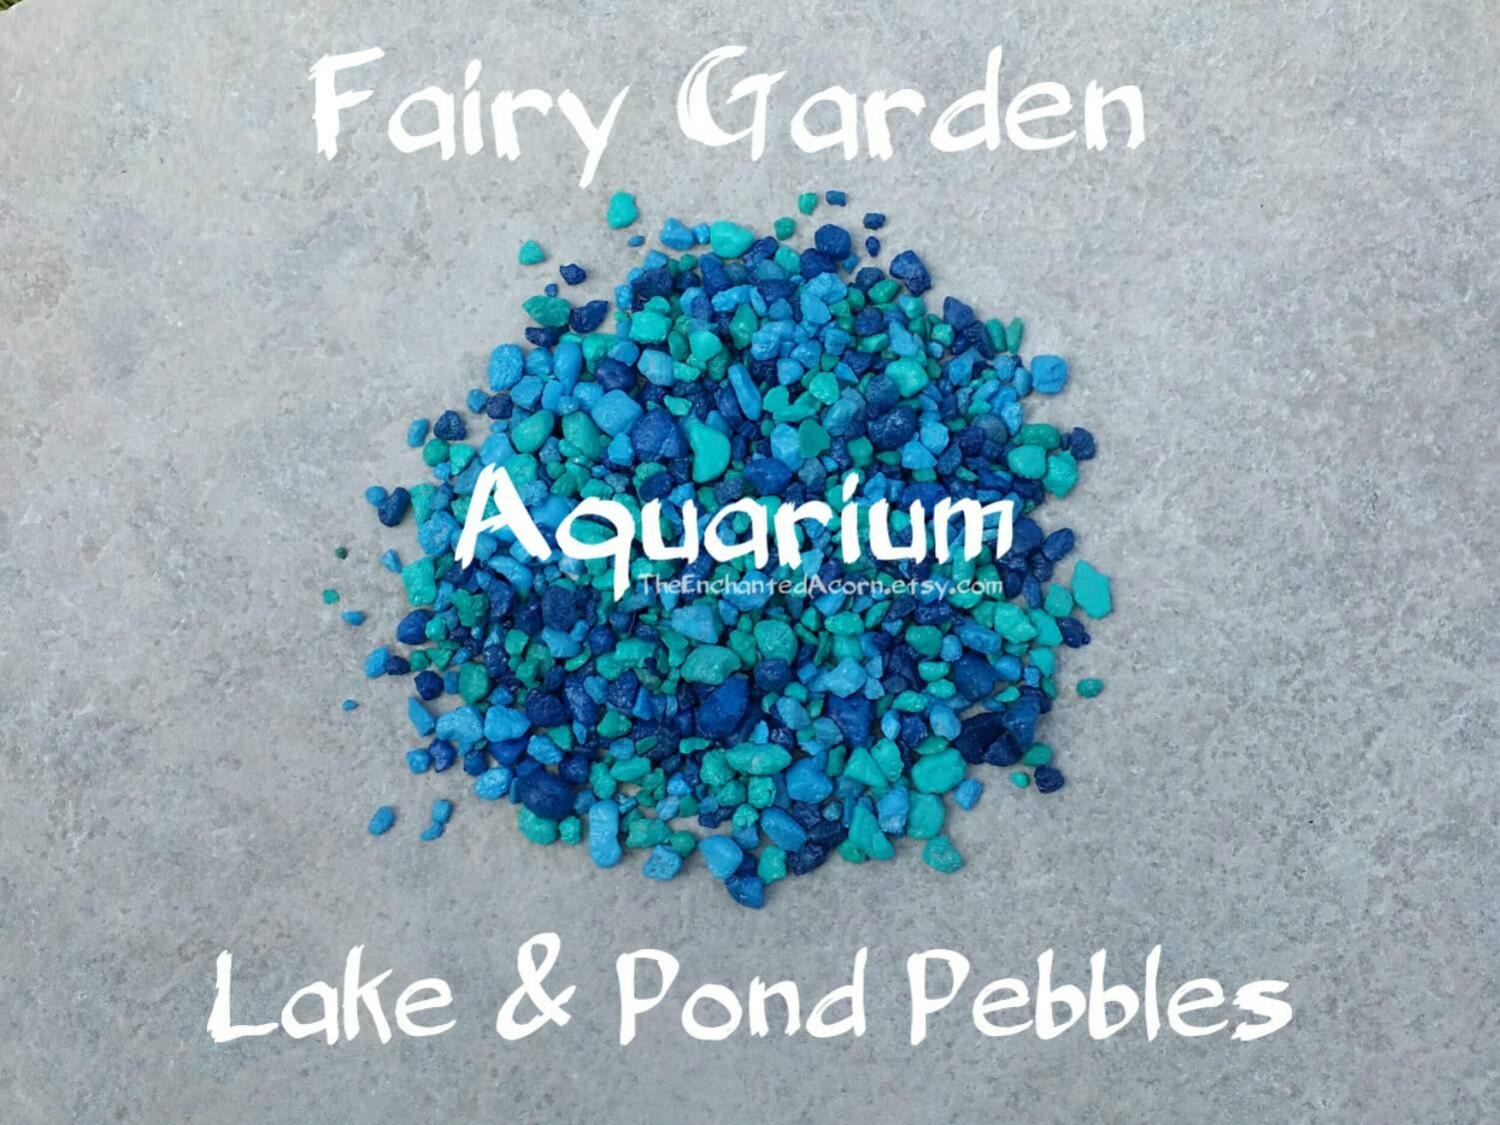 Pleasing Aquarium  Oz Fairy Garden Lake Pond Pebbles  Miniature Fairy  With Remarkable Aquarium  Oz Fairy Garden Lake Pond Pebbles  Miniature Fairy Garden  Accessories Beach Fairy Garden Supplies With Amazing Rhs Garden Rosemoor Devon Also Build A Garden Room In Addition New Covent Garden Soup Book And Chelsea Psychic Gardens As Well As Garden Sheds Edinburgh Additionally  X  Garden Shed From Etsystudiocom With   Remarkable Aquarium  Oz Fairy Garden Lake Pond Pebbles  Miniature Fairy  With Amazing Aquarium  Oz Fairy Garden Lake Pond Pebbles  Miniature Fairy Garden  Accessories Beach Fairy Garden Supplies And Pleasing Rhs Garden Rosemoor Devon Also Build A Garden Room In Addition New Covent Garden Soup Book From Etsystudiocom